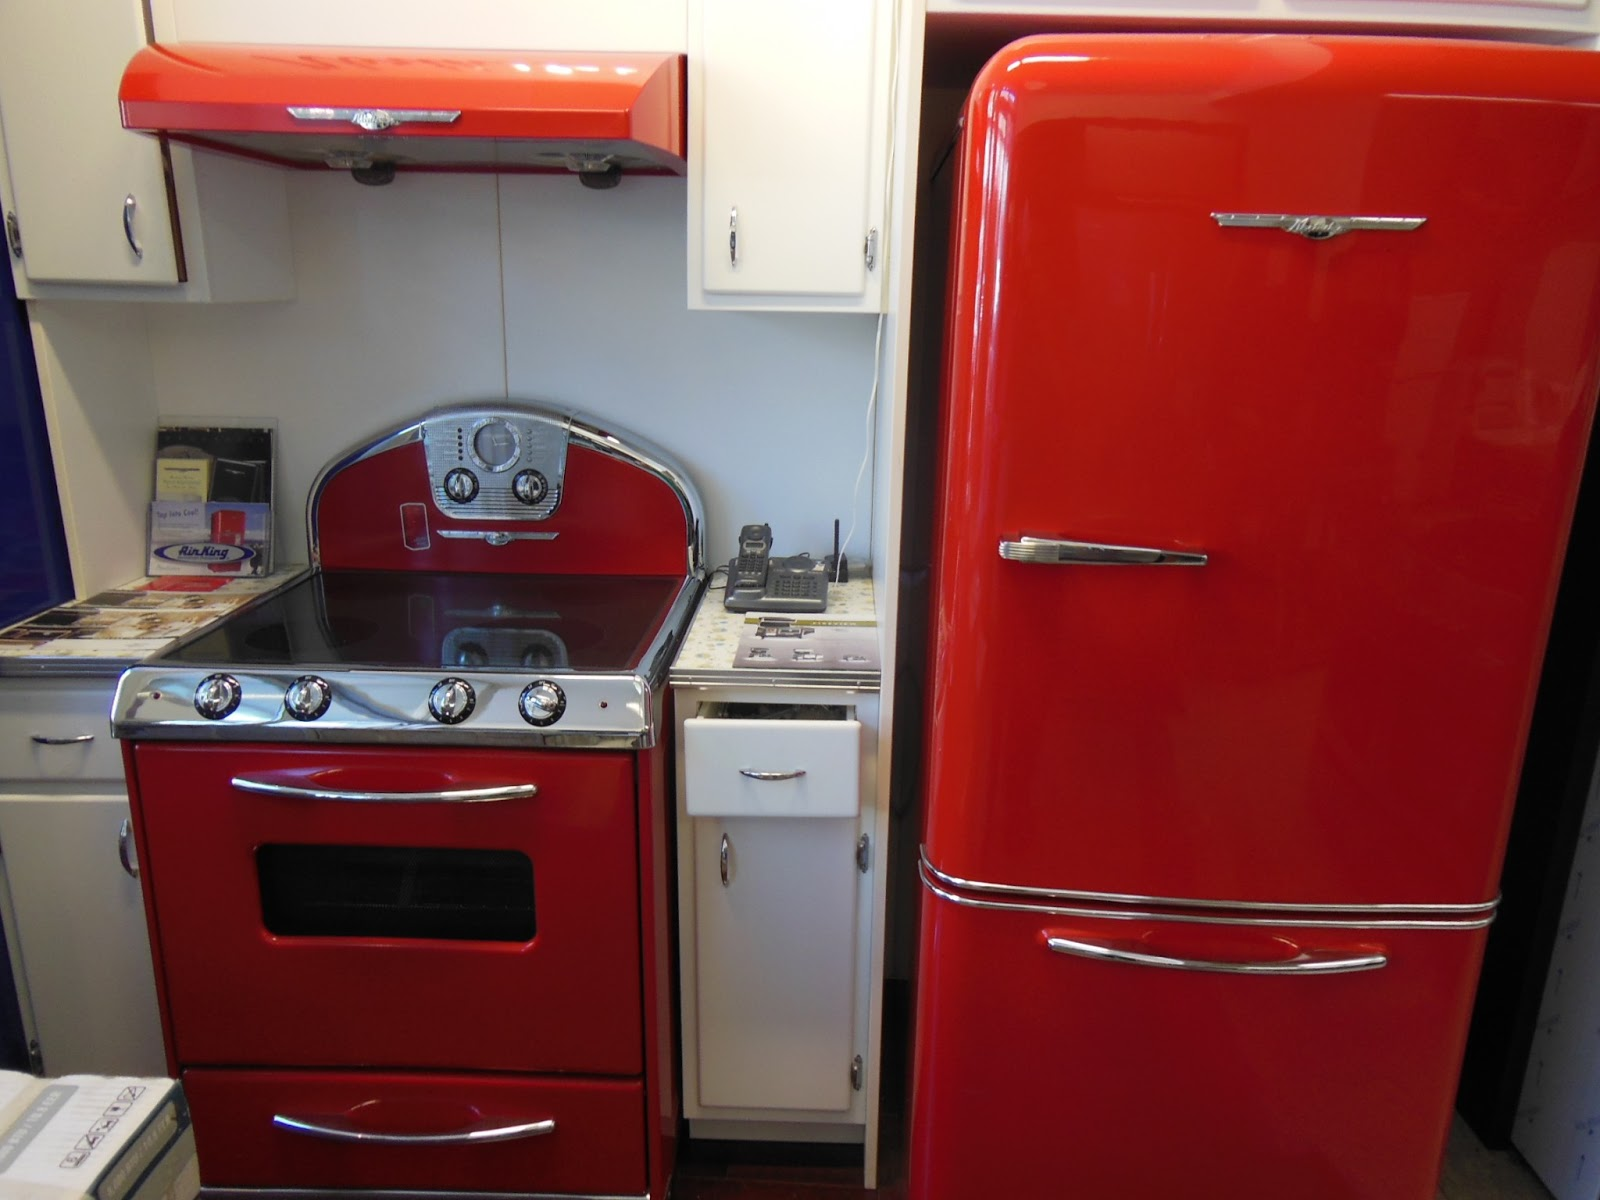 Uncategorized Elmira Appliances Kitchen bloor dovercourt appliance blog elmira stoveworks at bda northstar collection of stove works on display bda